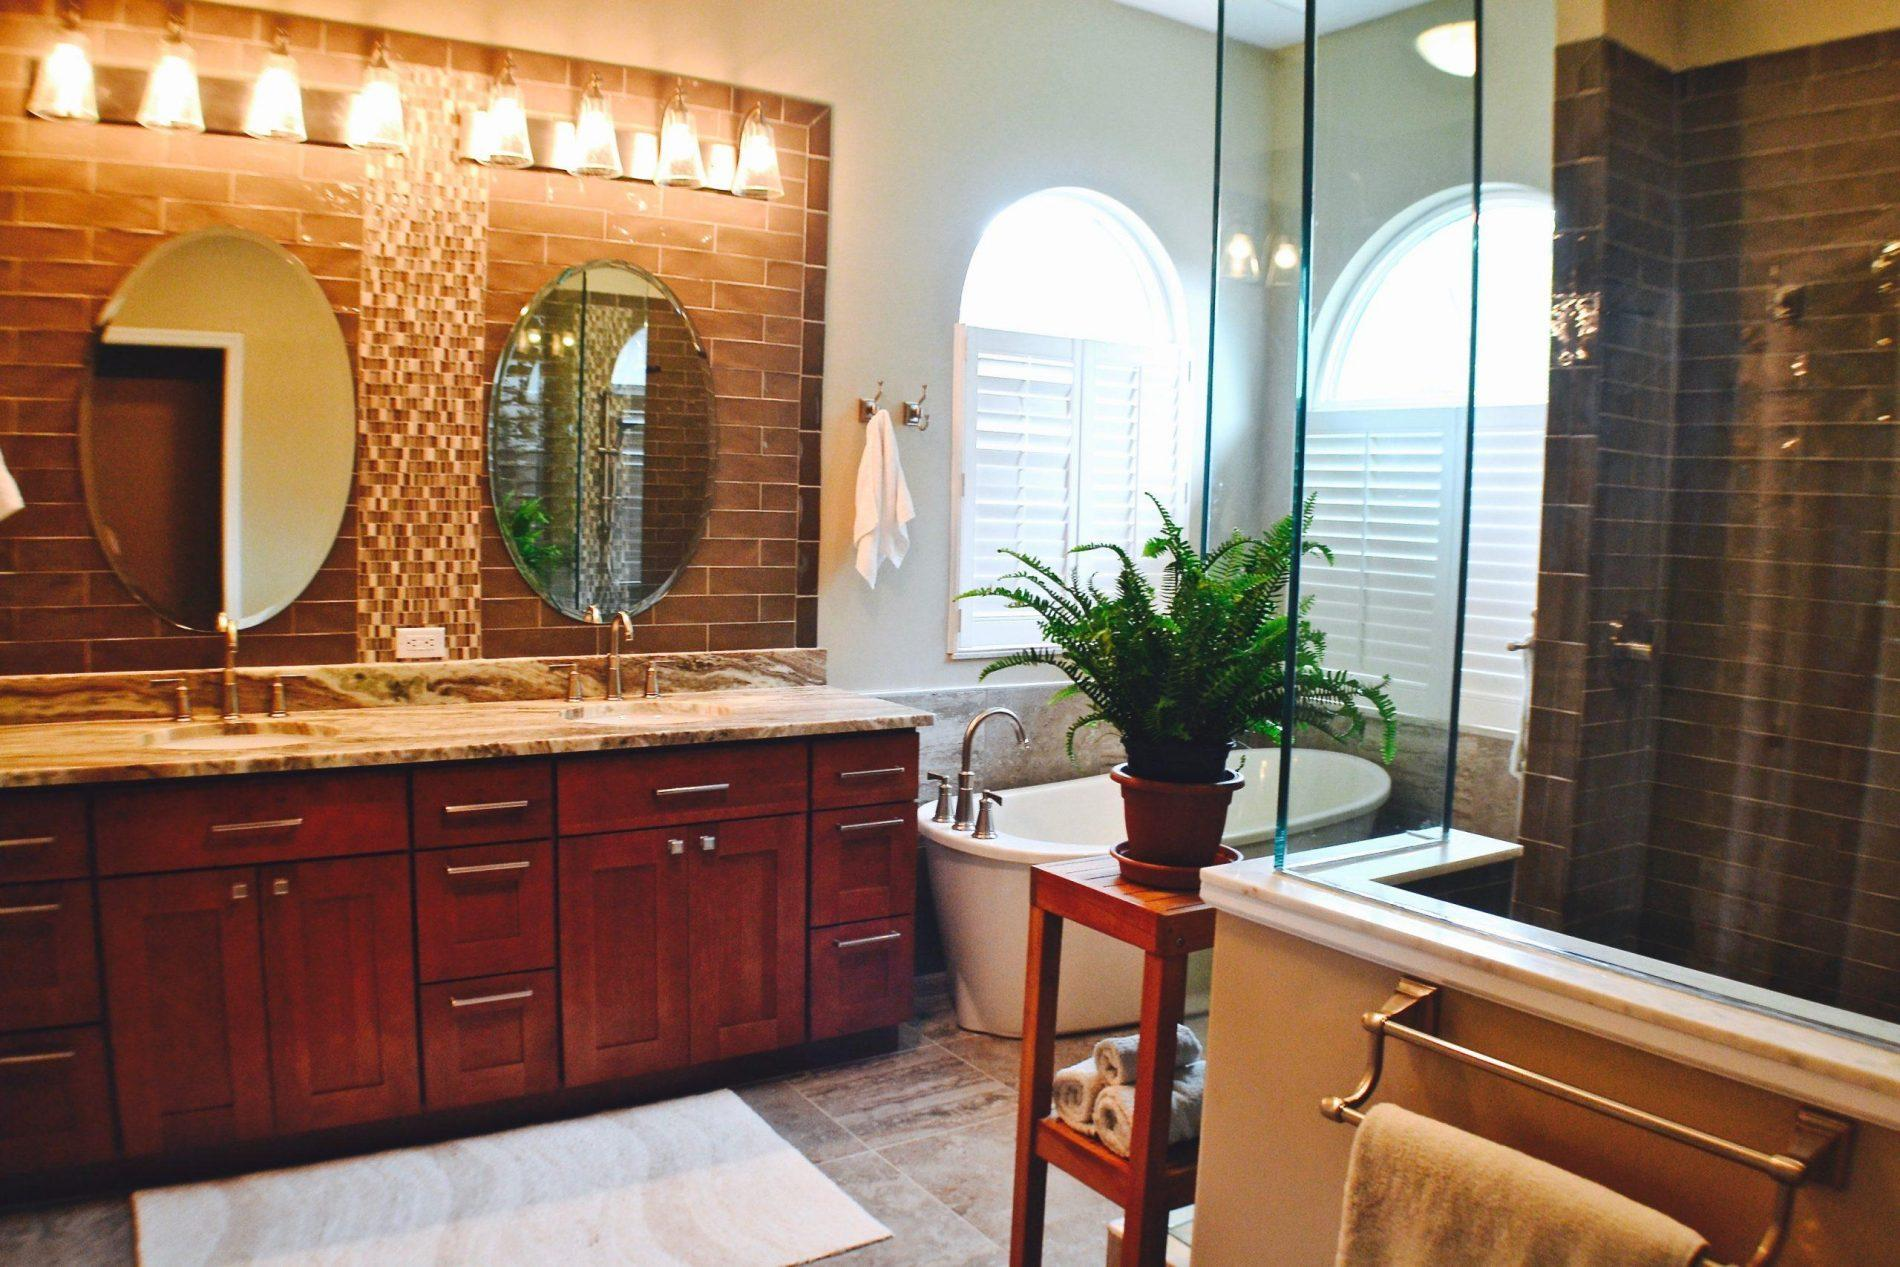 Chads Home Remodeling Service In Estero, Naples FL